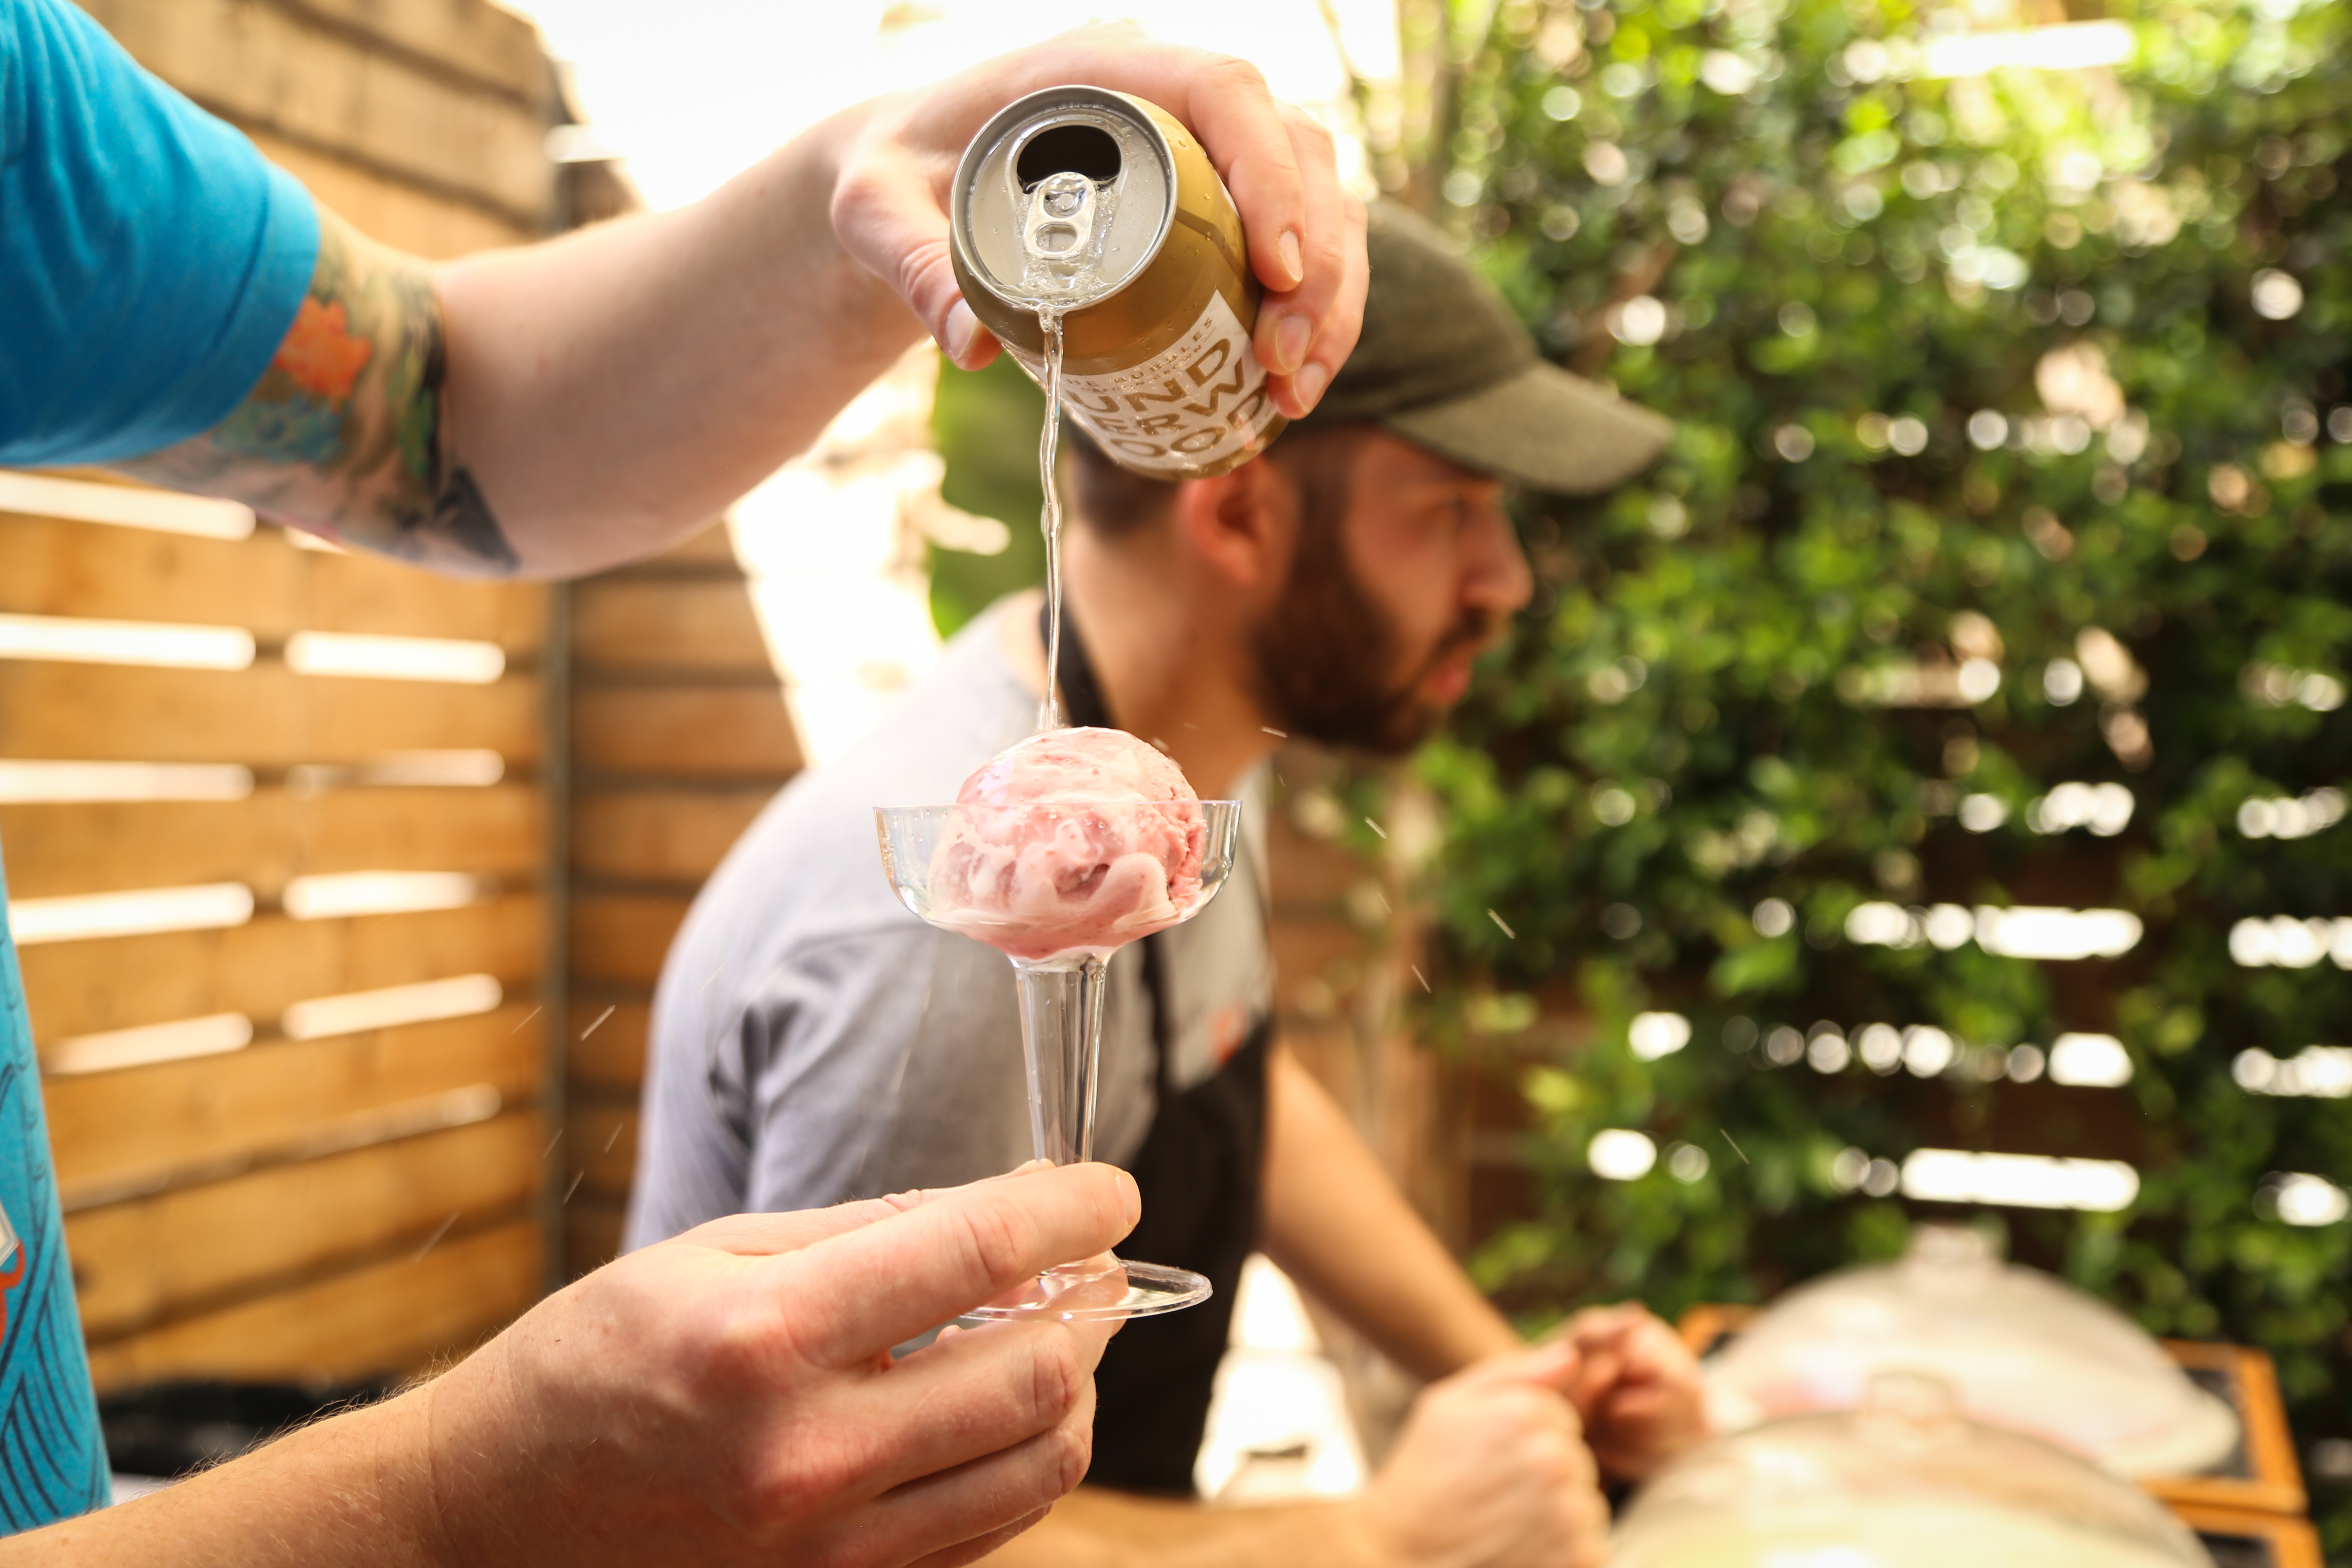 Man pouring a can of sparkling wine over ice cream